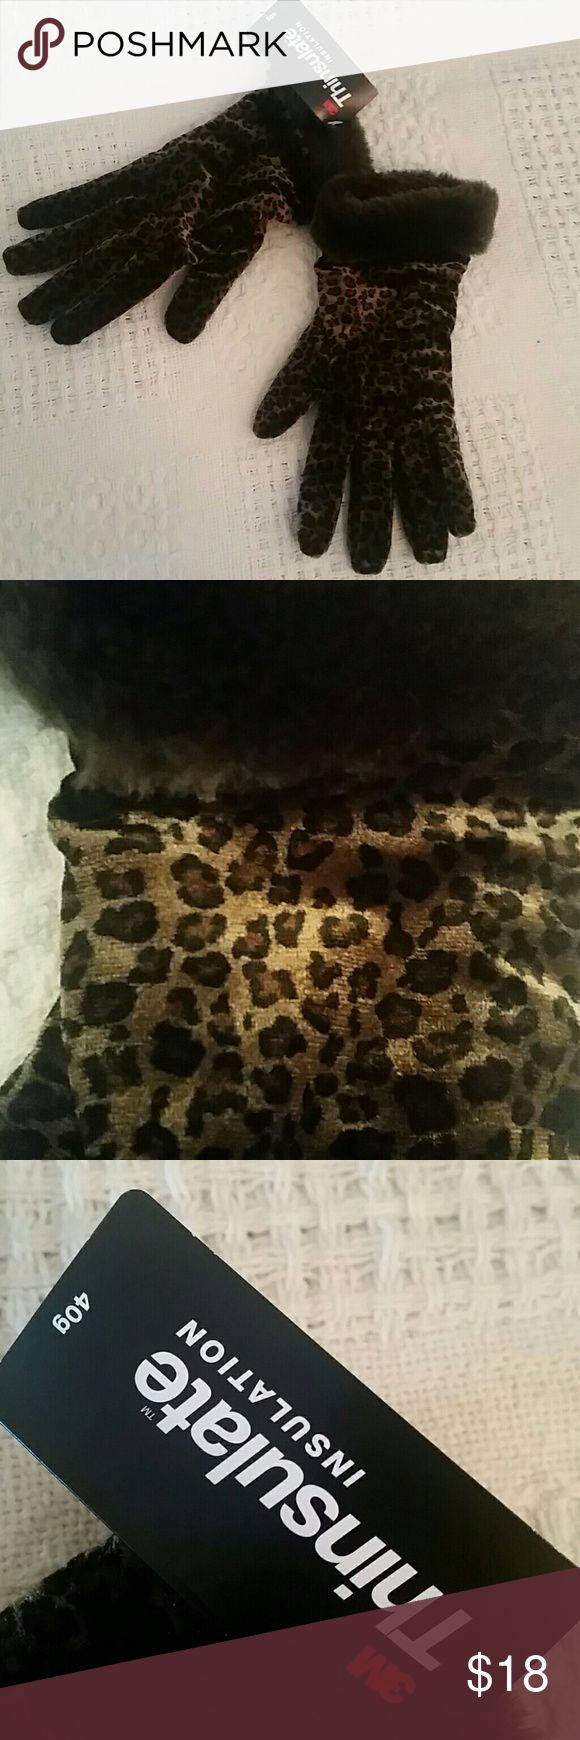 New 3M thinsulate gloves gift stocking stuffers New without tags, 3M thinsulate animal gloves, faux fur trim, one size 3M Accessories Gloves & Mittens